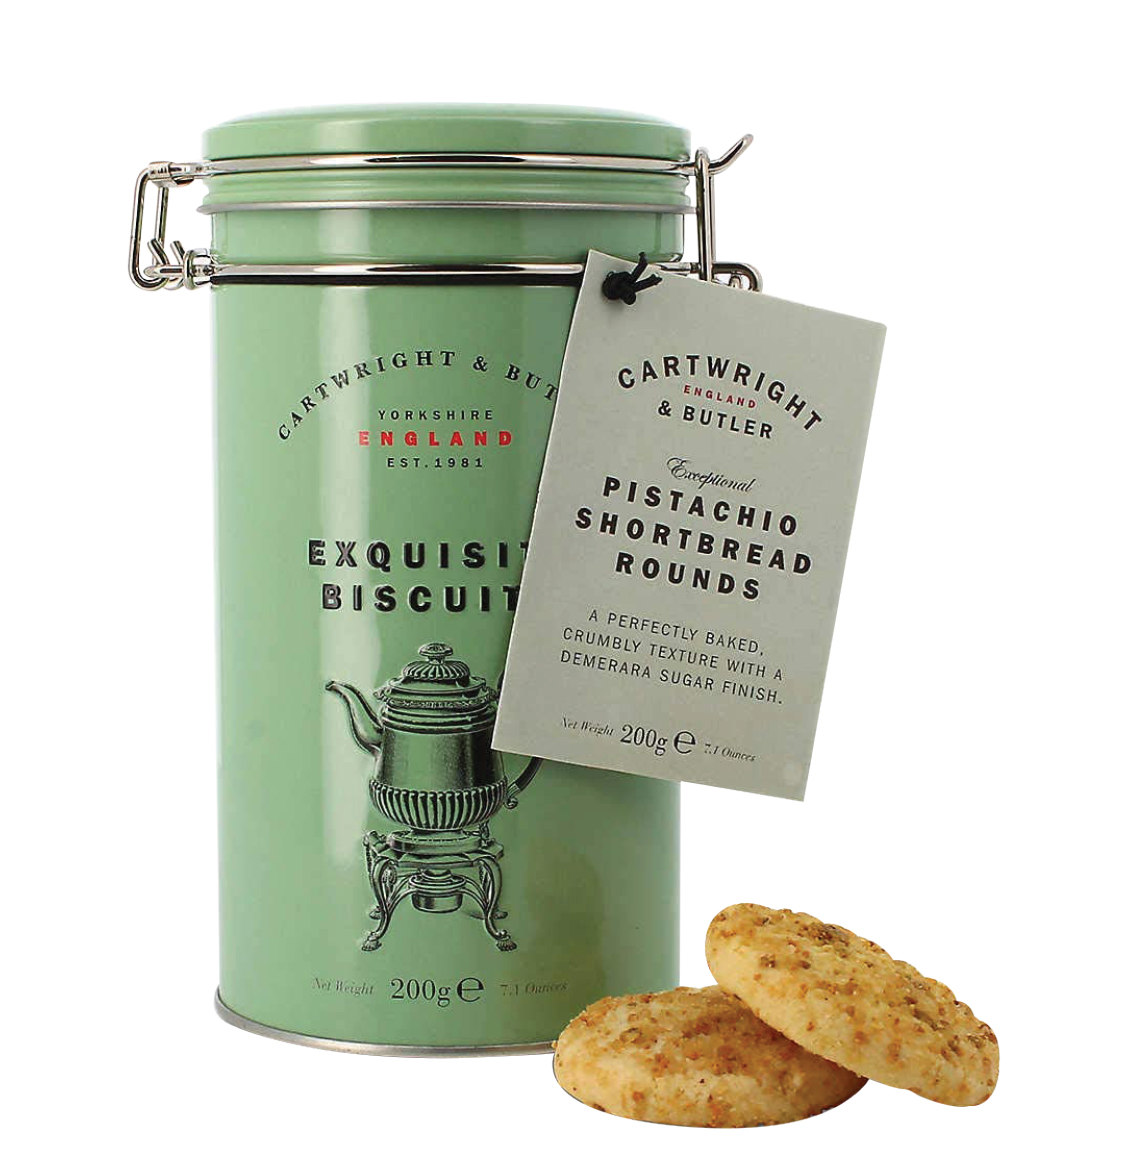 Cartwright and Butler Pistachio Shortbread Rounds 200g